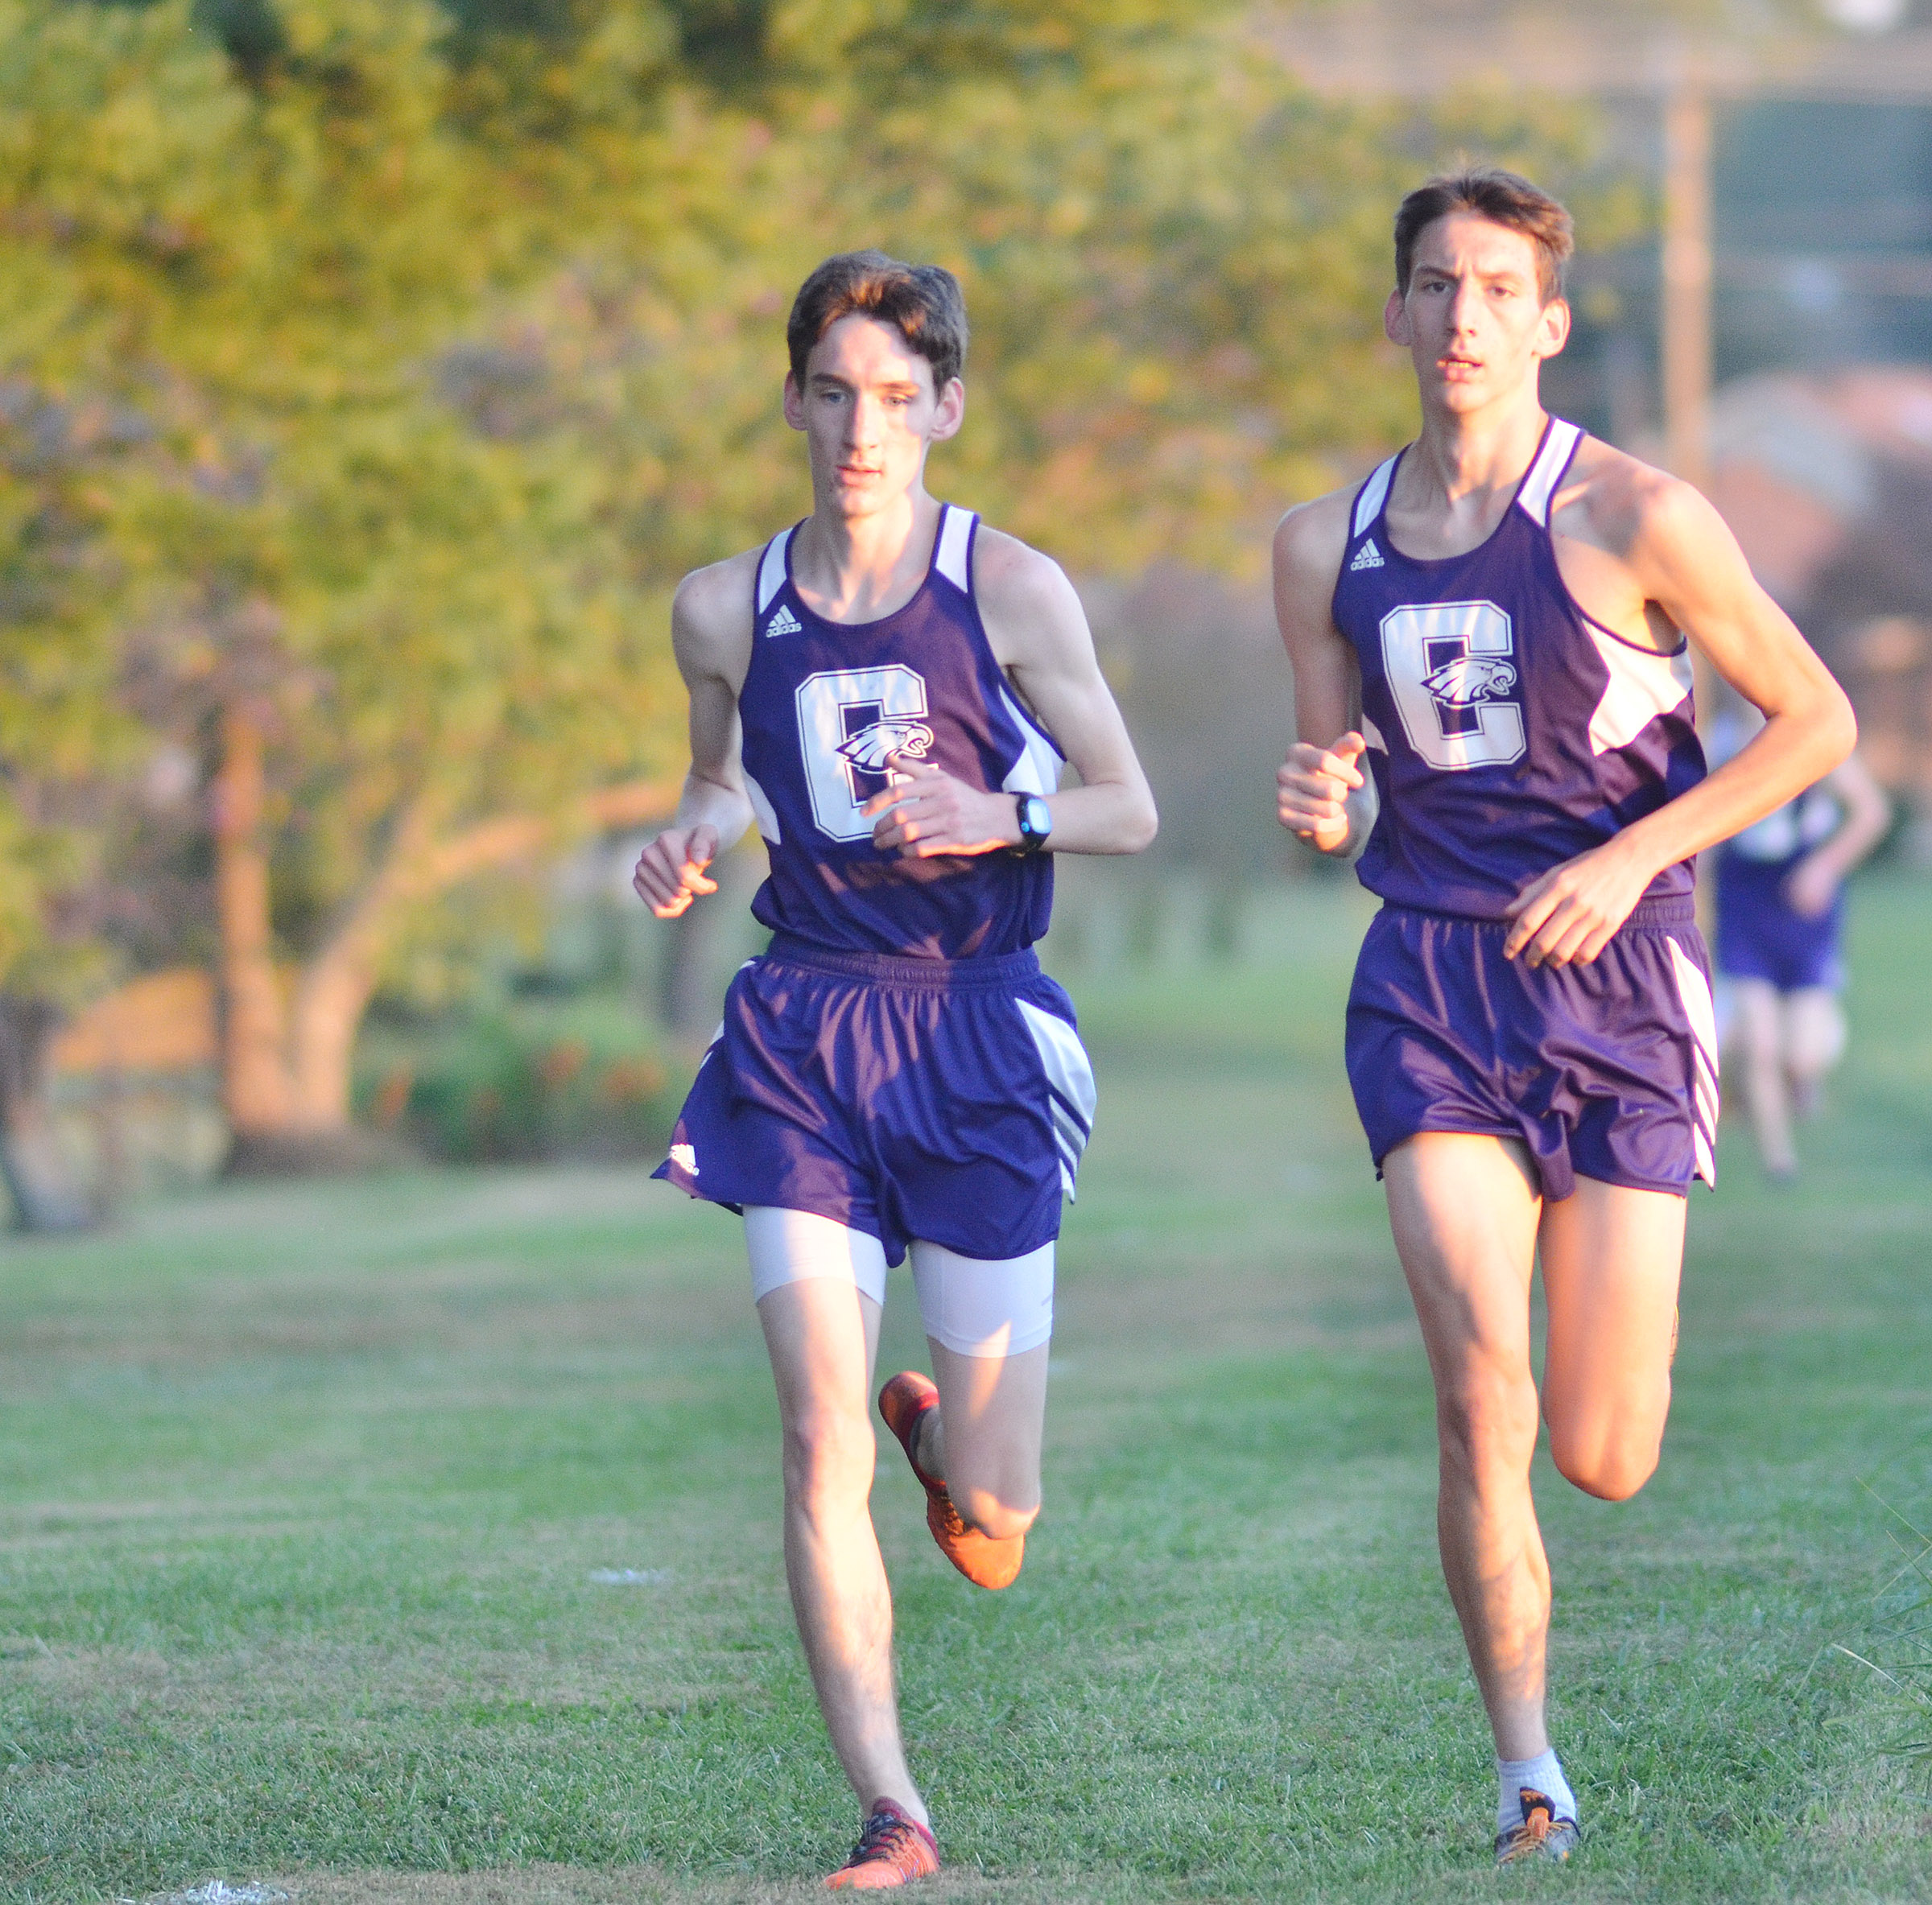 CHS juniors Ian McAninch, at left, and Evan McAninch run.